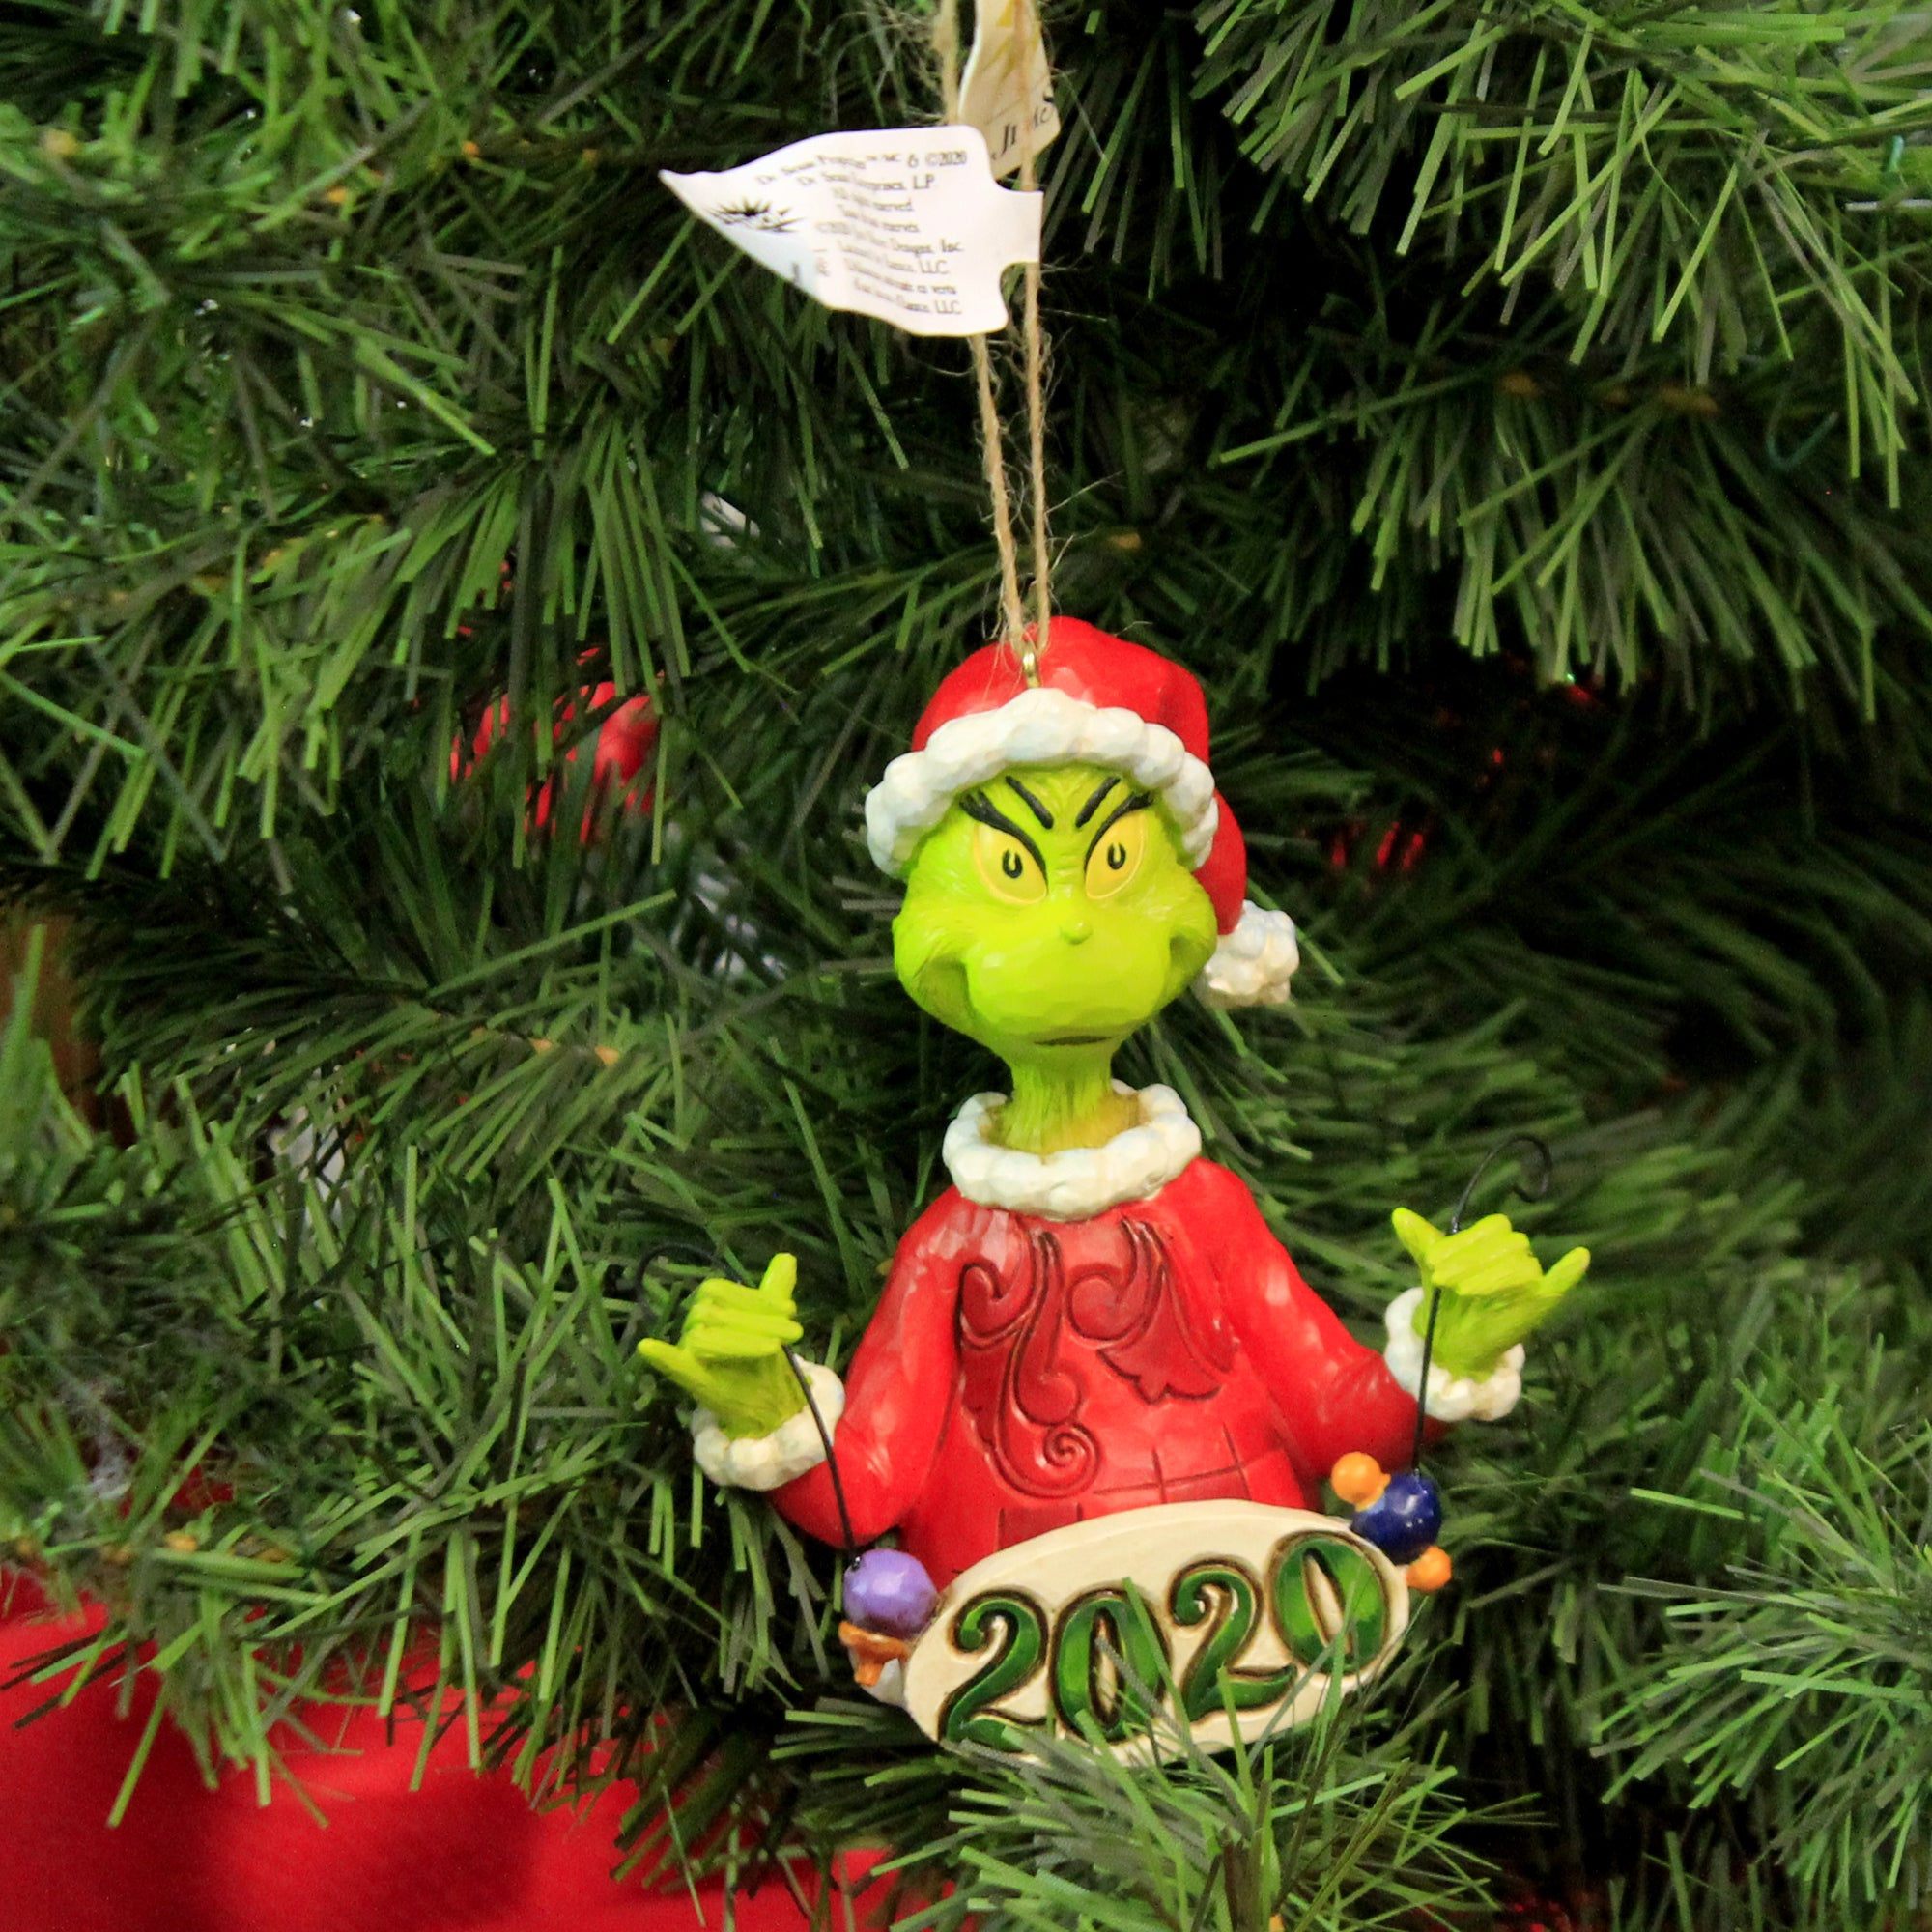 Jim Shore Grinch String Ornaments 2020 6006573 Decorative Hanging Ornaments Sbk Gifts Sbkgifts Com